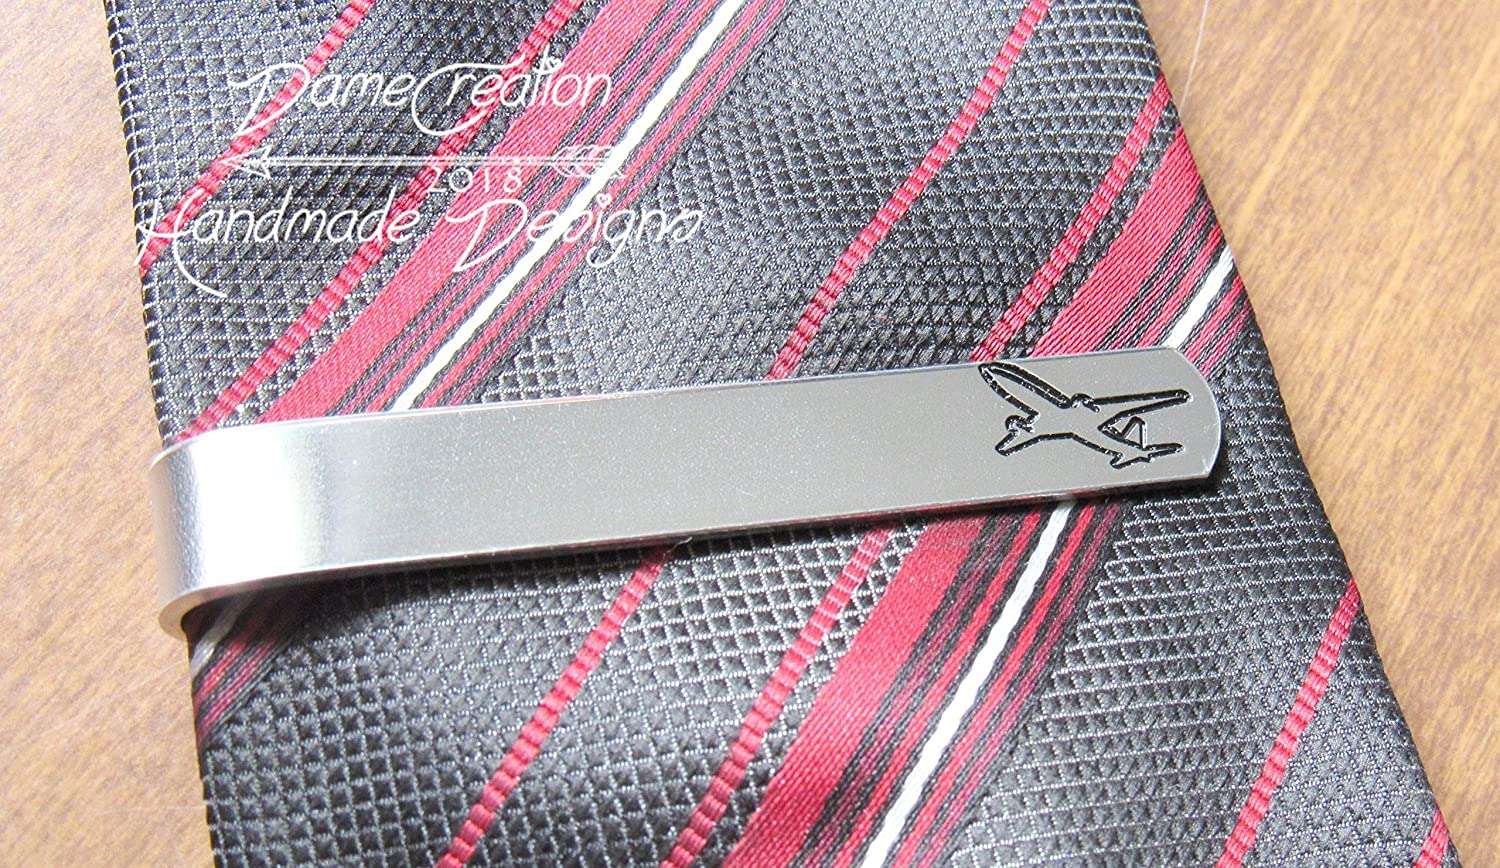 Airplane Tie Clip, Airplane Gifts, Custom Tie Clip, Personalized Tie Bar, Christmas Gifts for Boyfriend